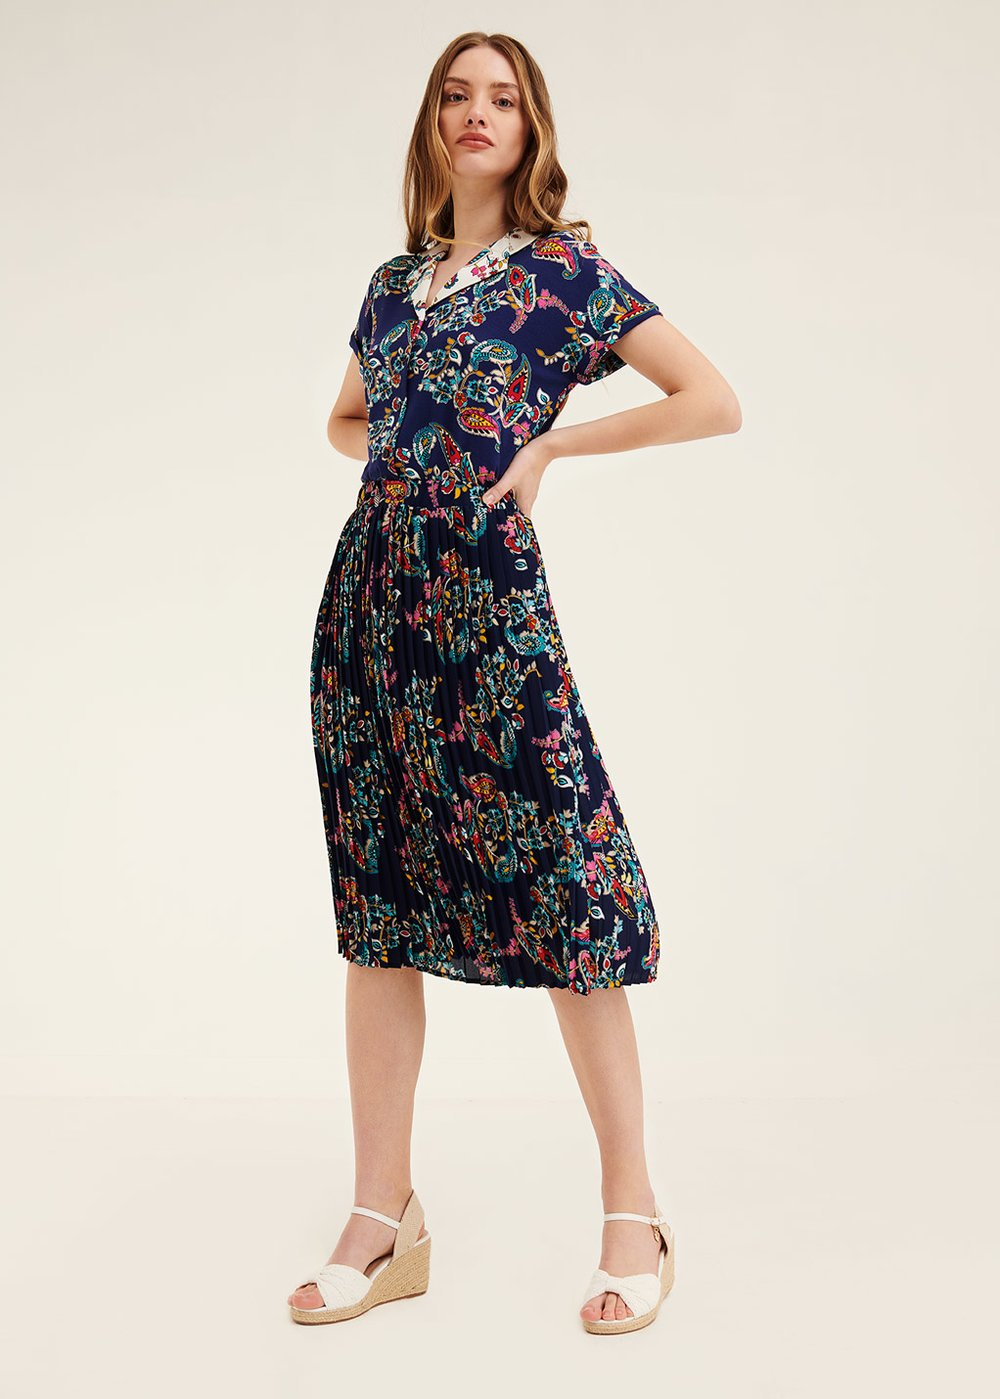 Gioia skirt with all-over pattern - Blue / Papaya Fantasia - Woman